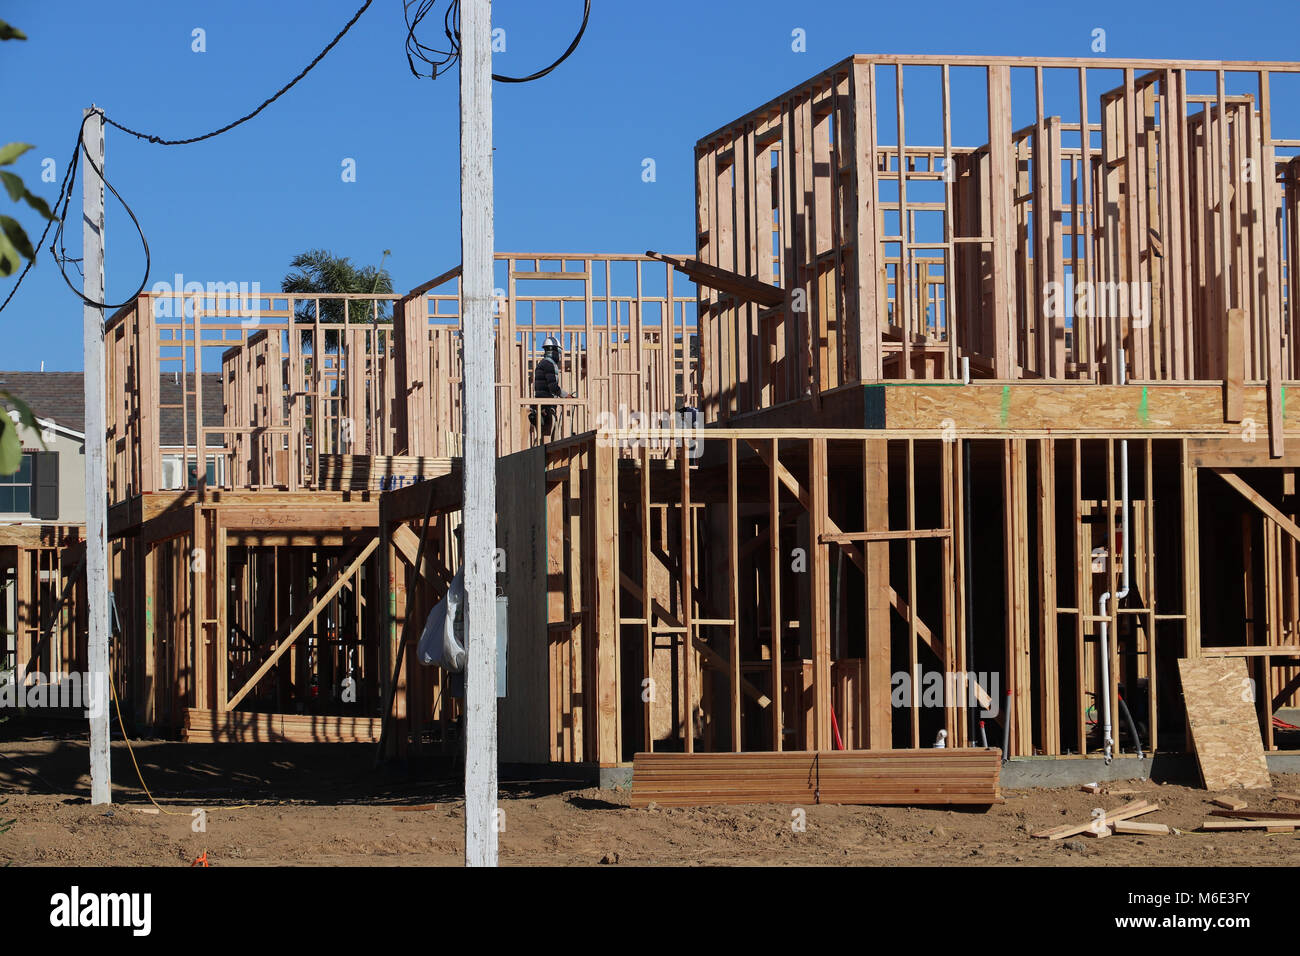 d6b04d9b Several new two-story homes under construction, just framed, with skeletal  walls built of 2 x 4 lumber; blue sky behind, power poles, on sunny day.